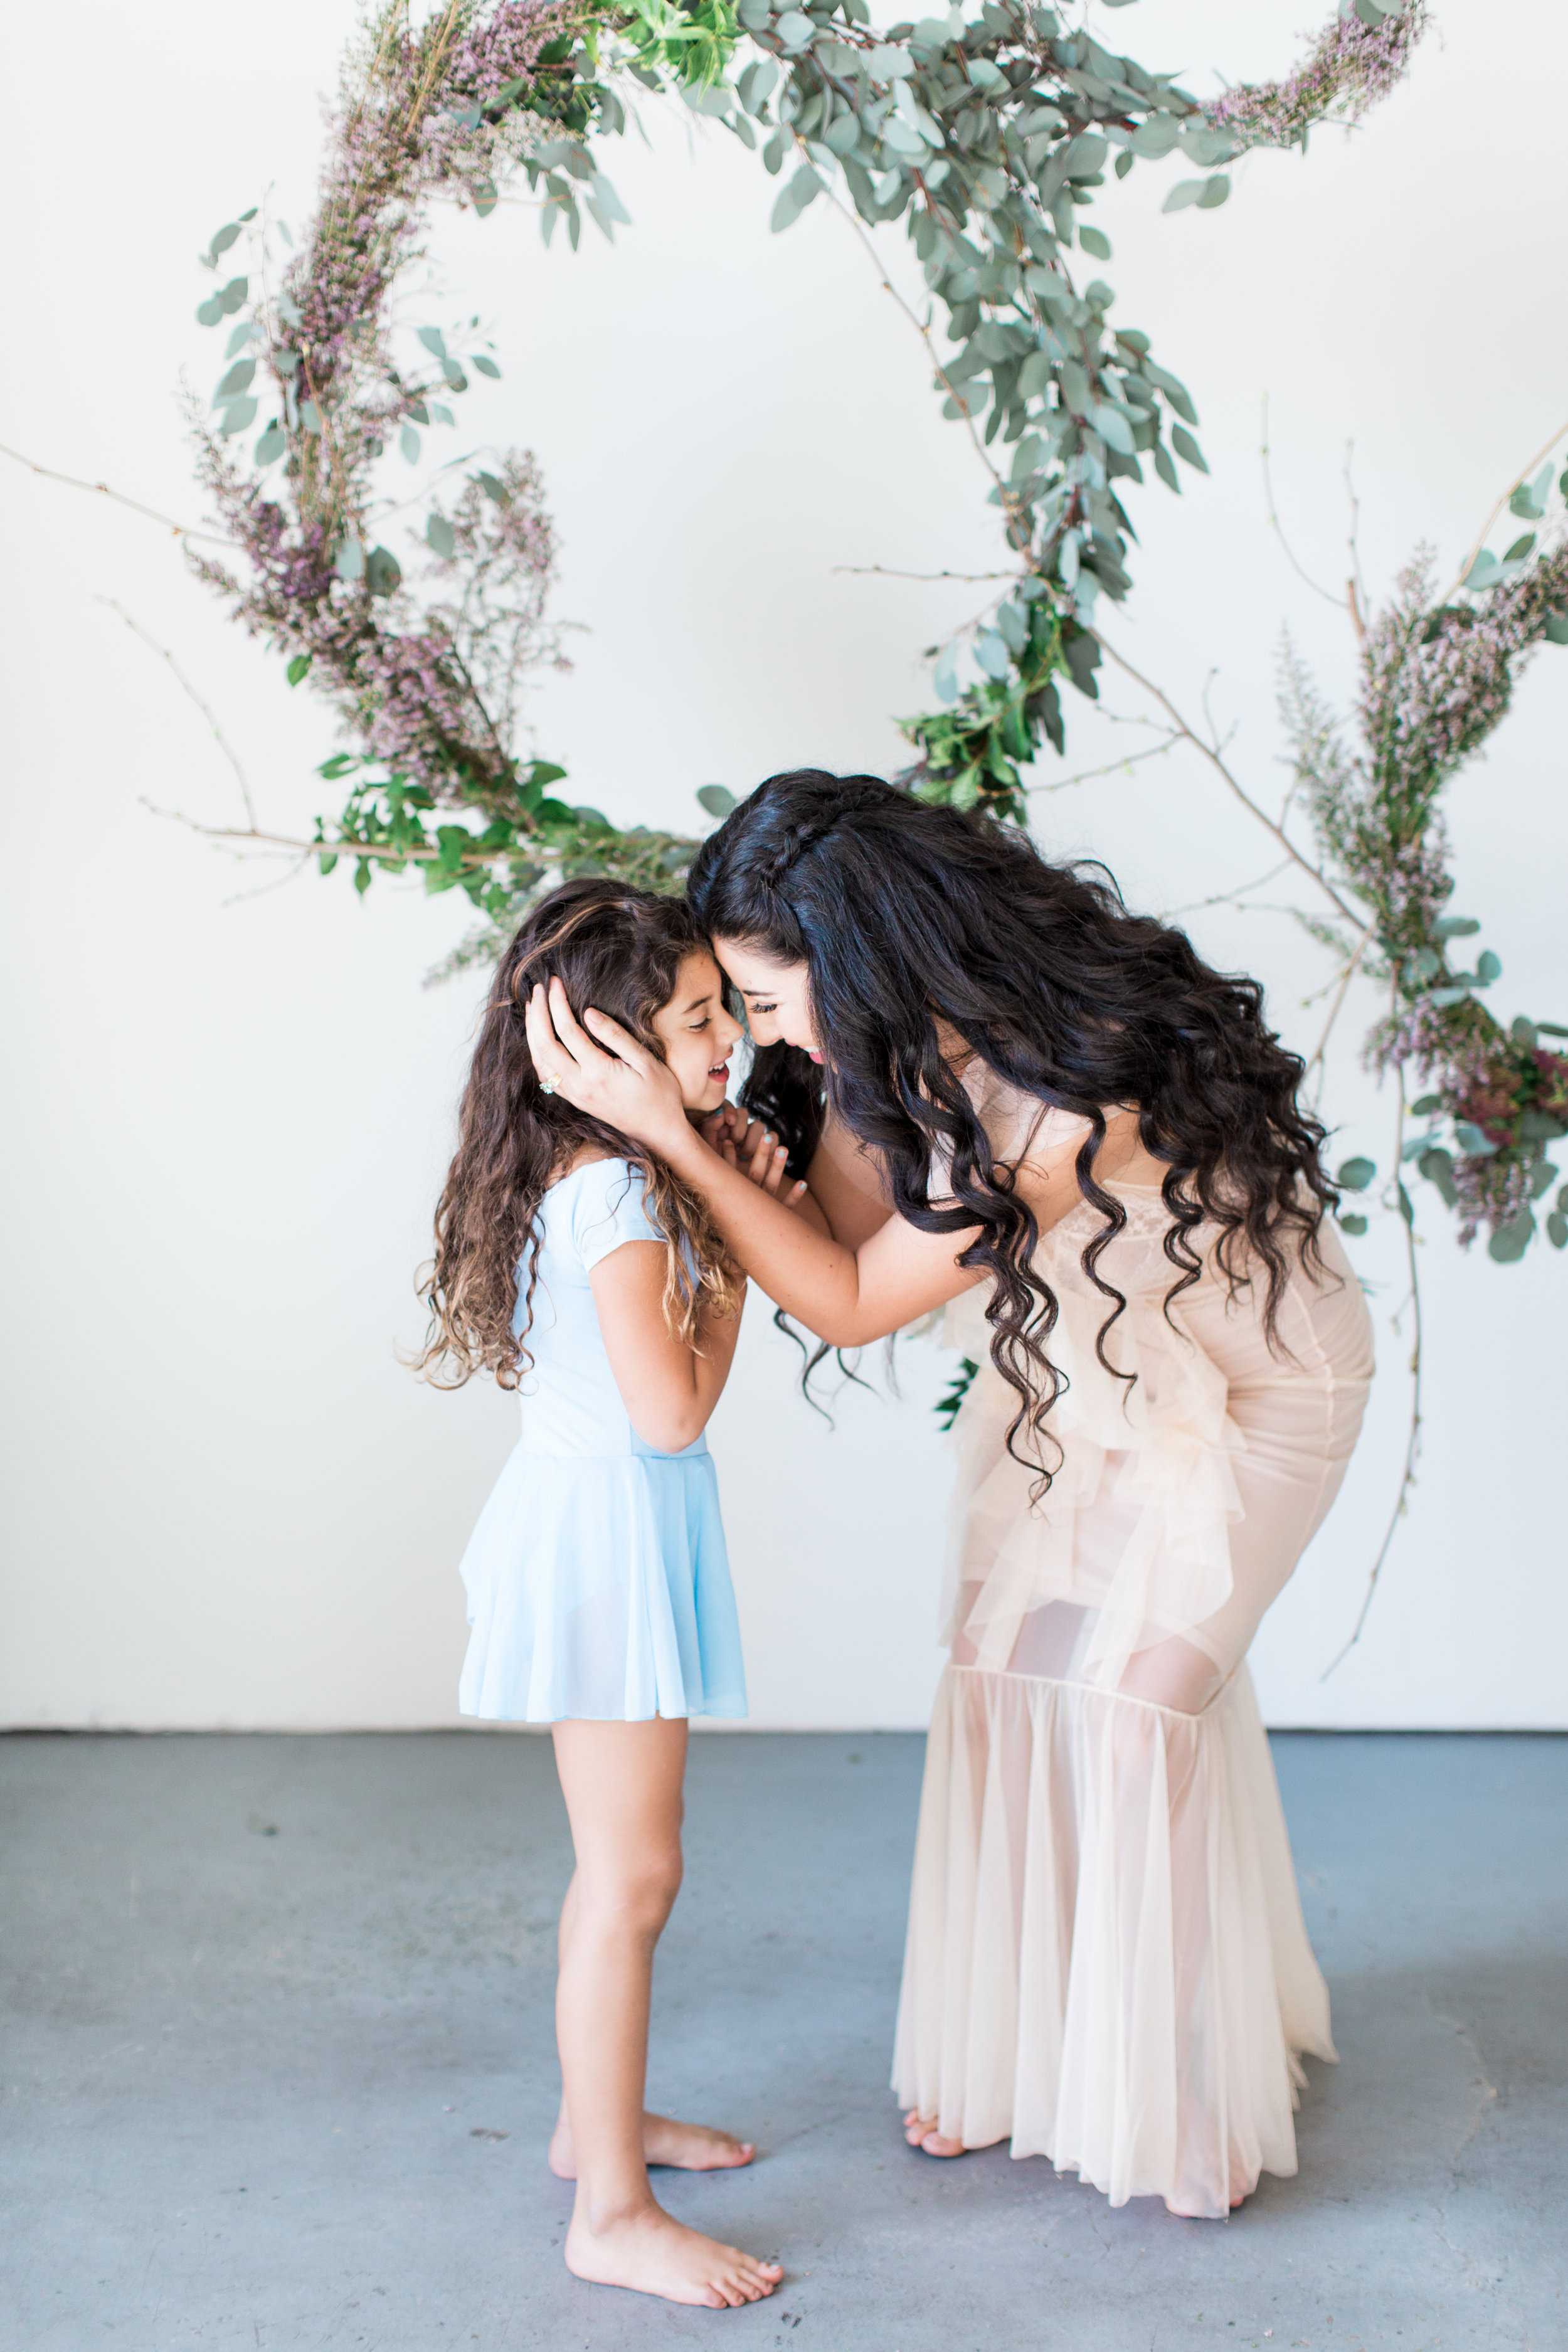 Photography sessions for Mother's Day 2018 held in Orange County, Ca by family photographer Lovisa Photo.